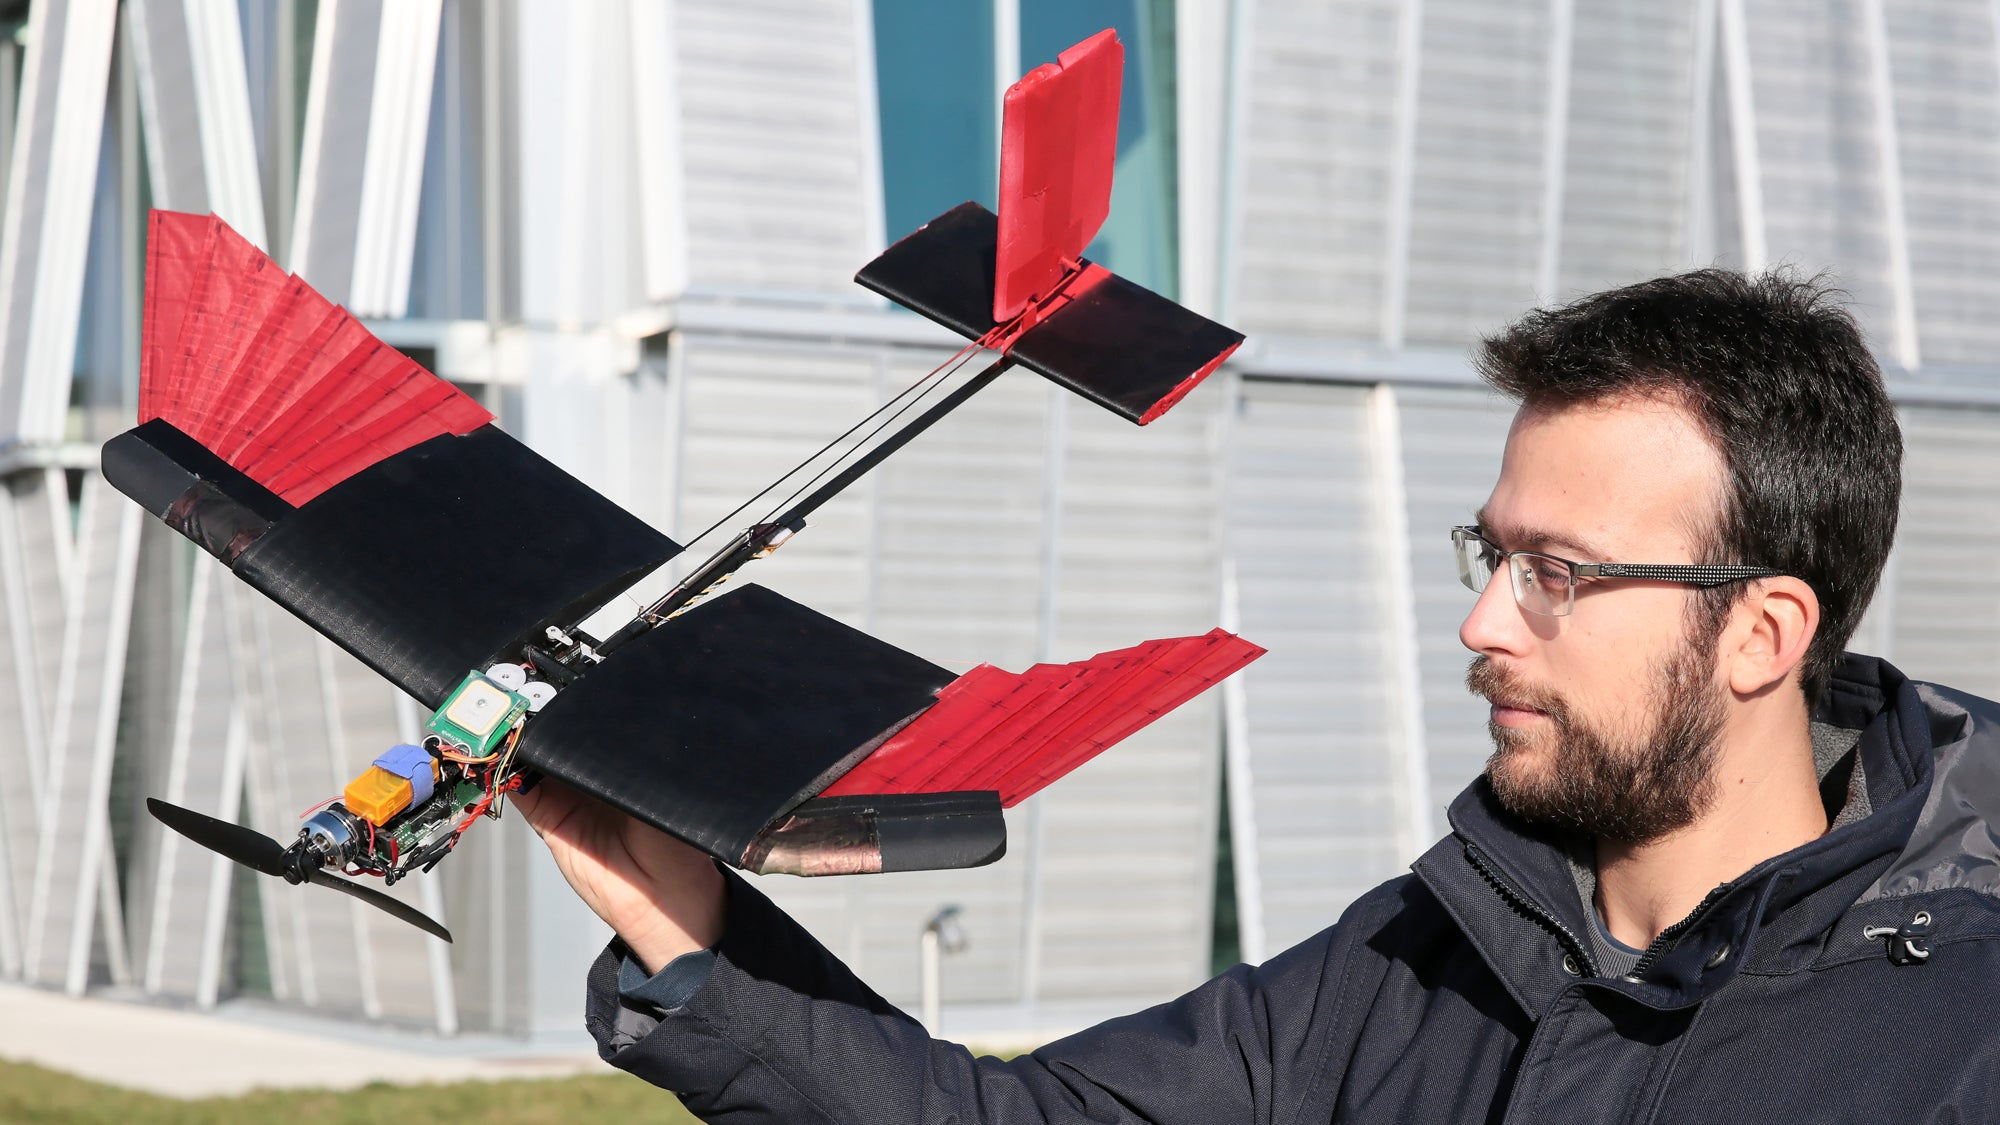 Researchers Make An Obvious Discovery For Improving Drones